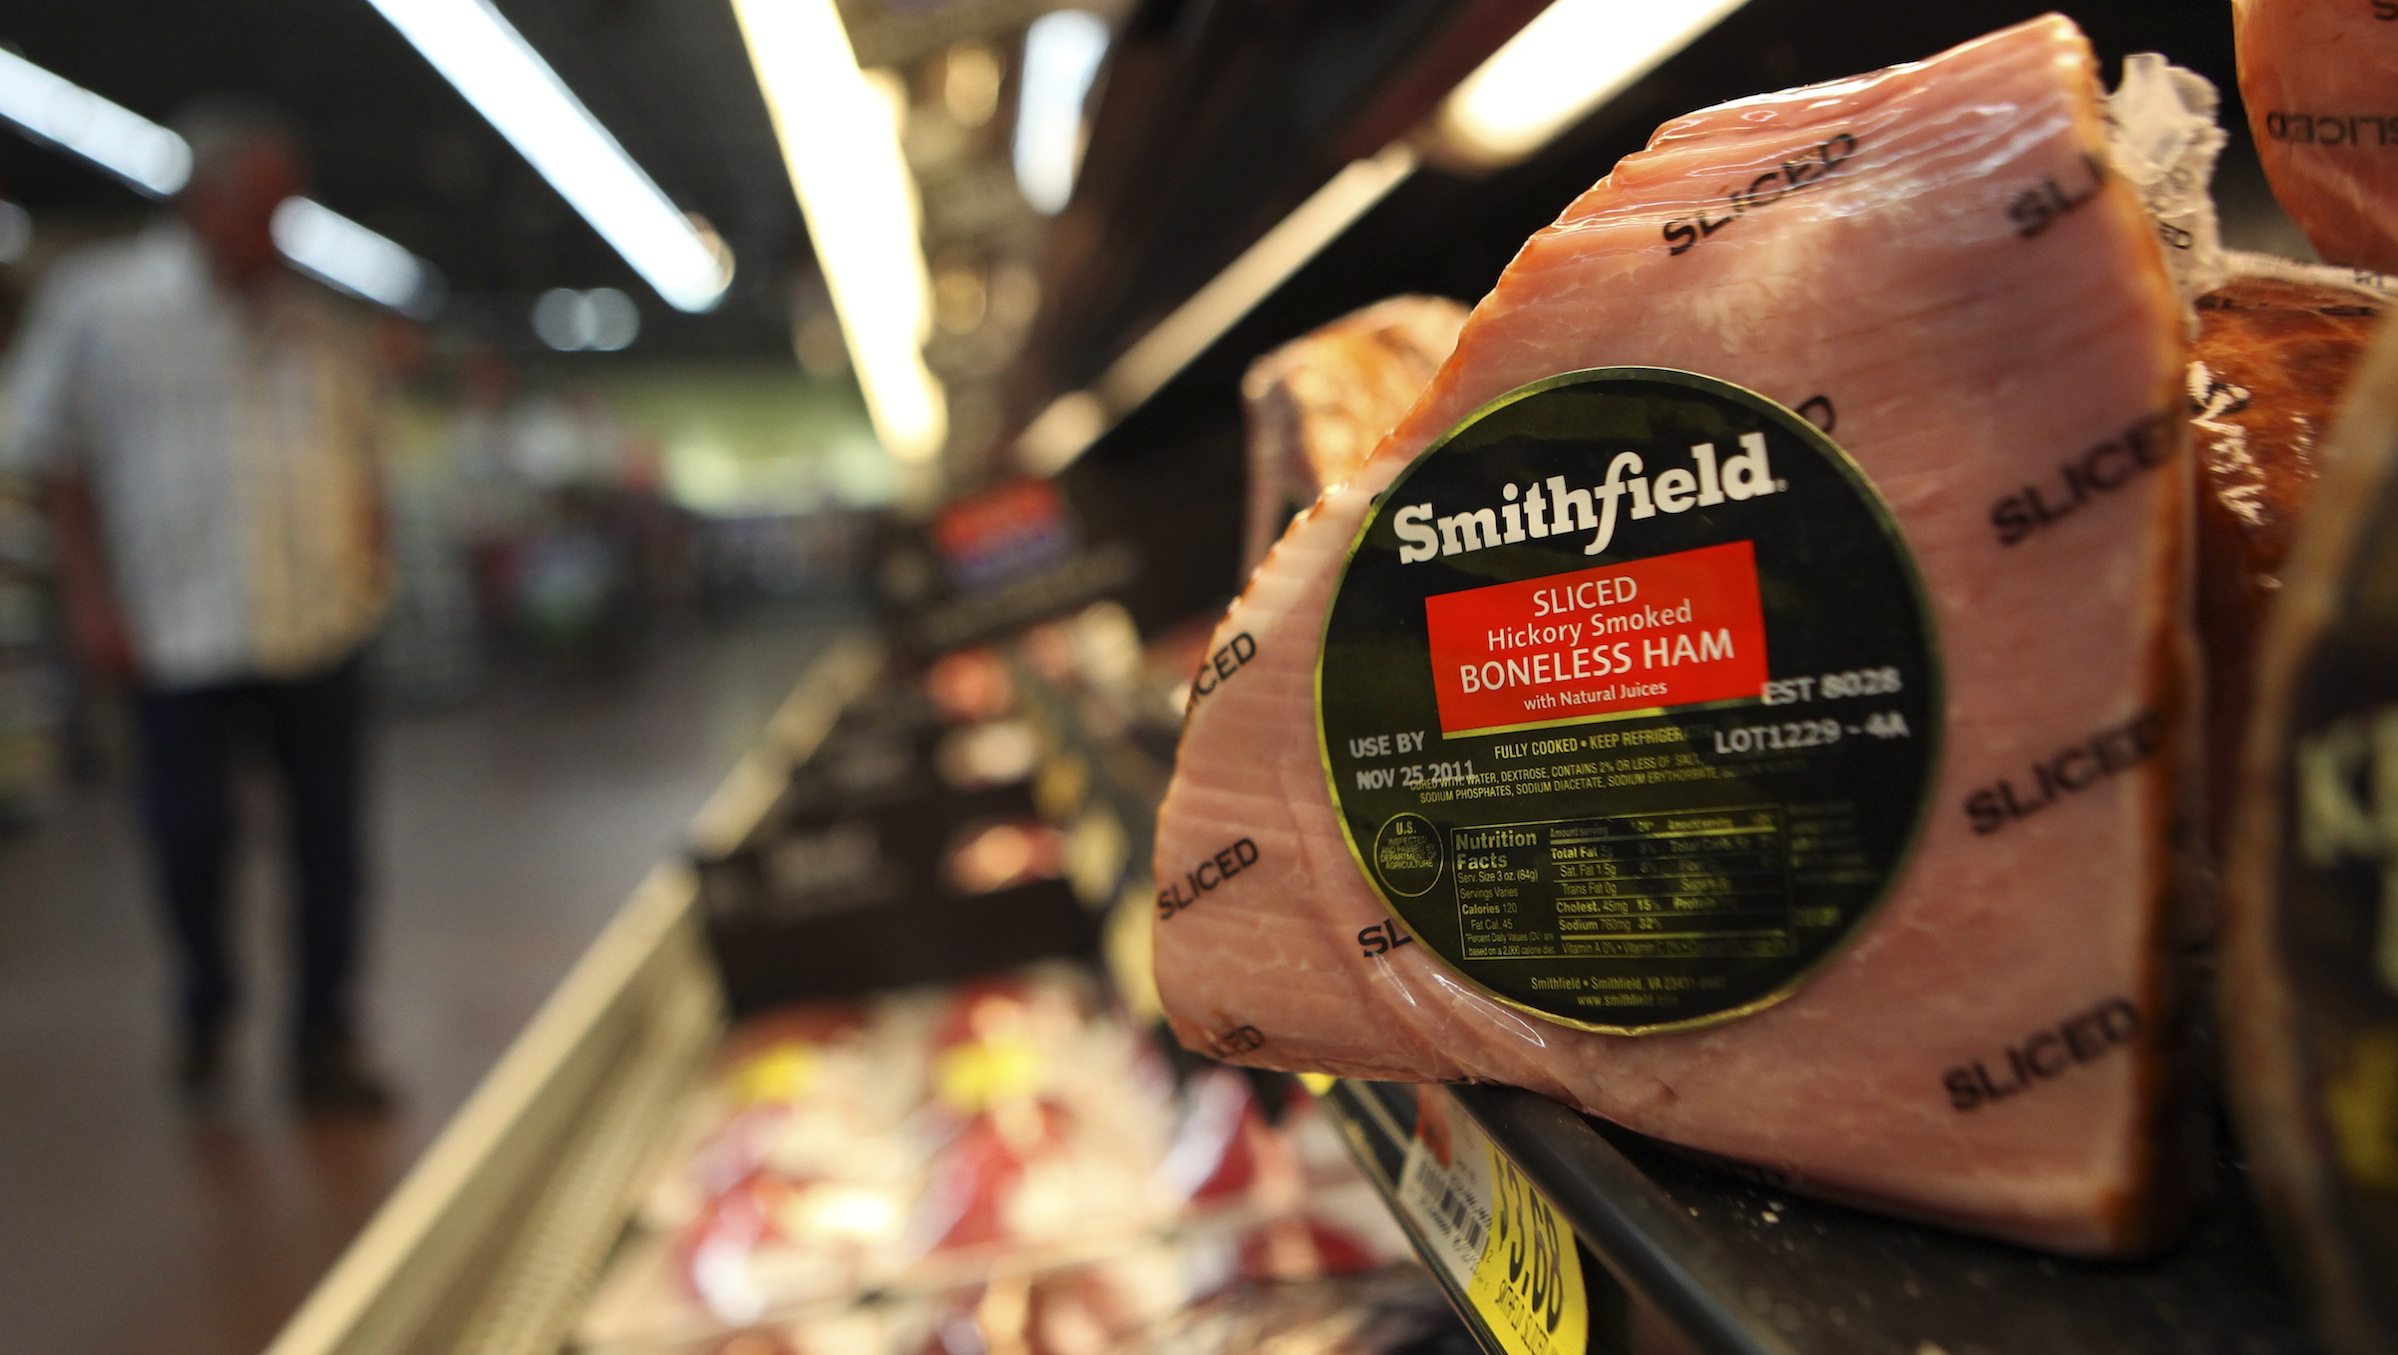 FILE - This Sept. 6, 2011 file photo shows a Smithfield ham at a grocery store in Richardson, Texas. Smithfield Foods Inc. reports its fiscal quarter net income on March 7, 2013. (AP Photo/LM Otero)